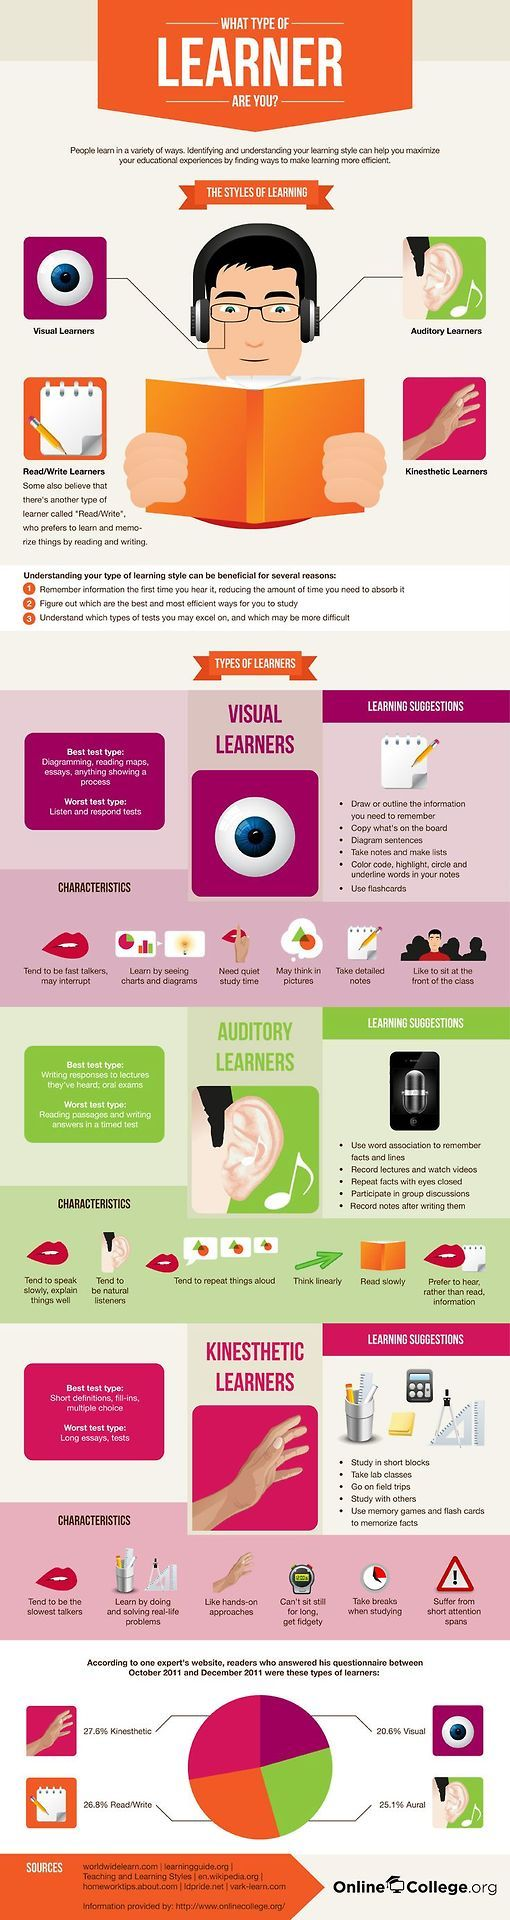 Studying according to your learning style is very helpful for studying. What type of learner are you?